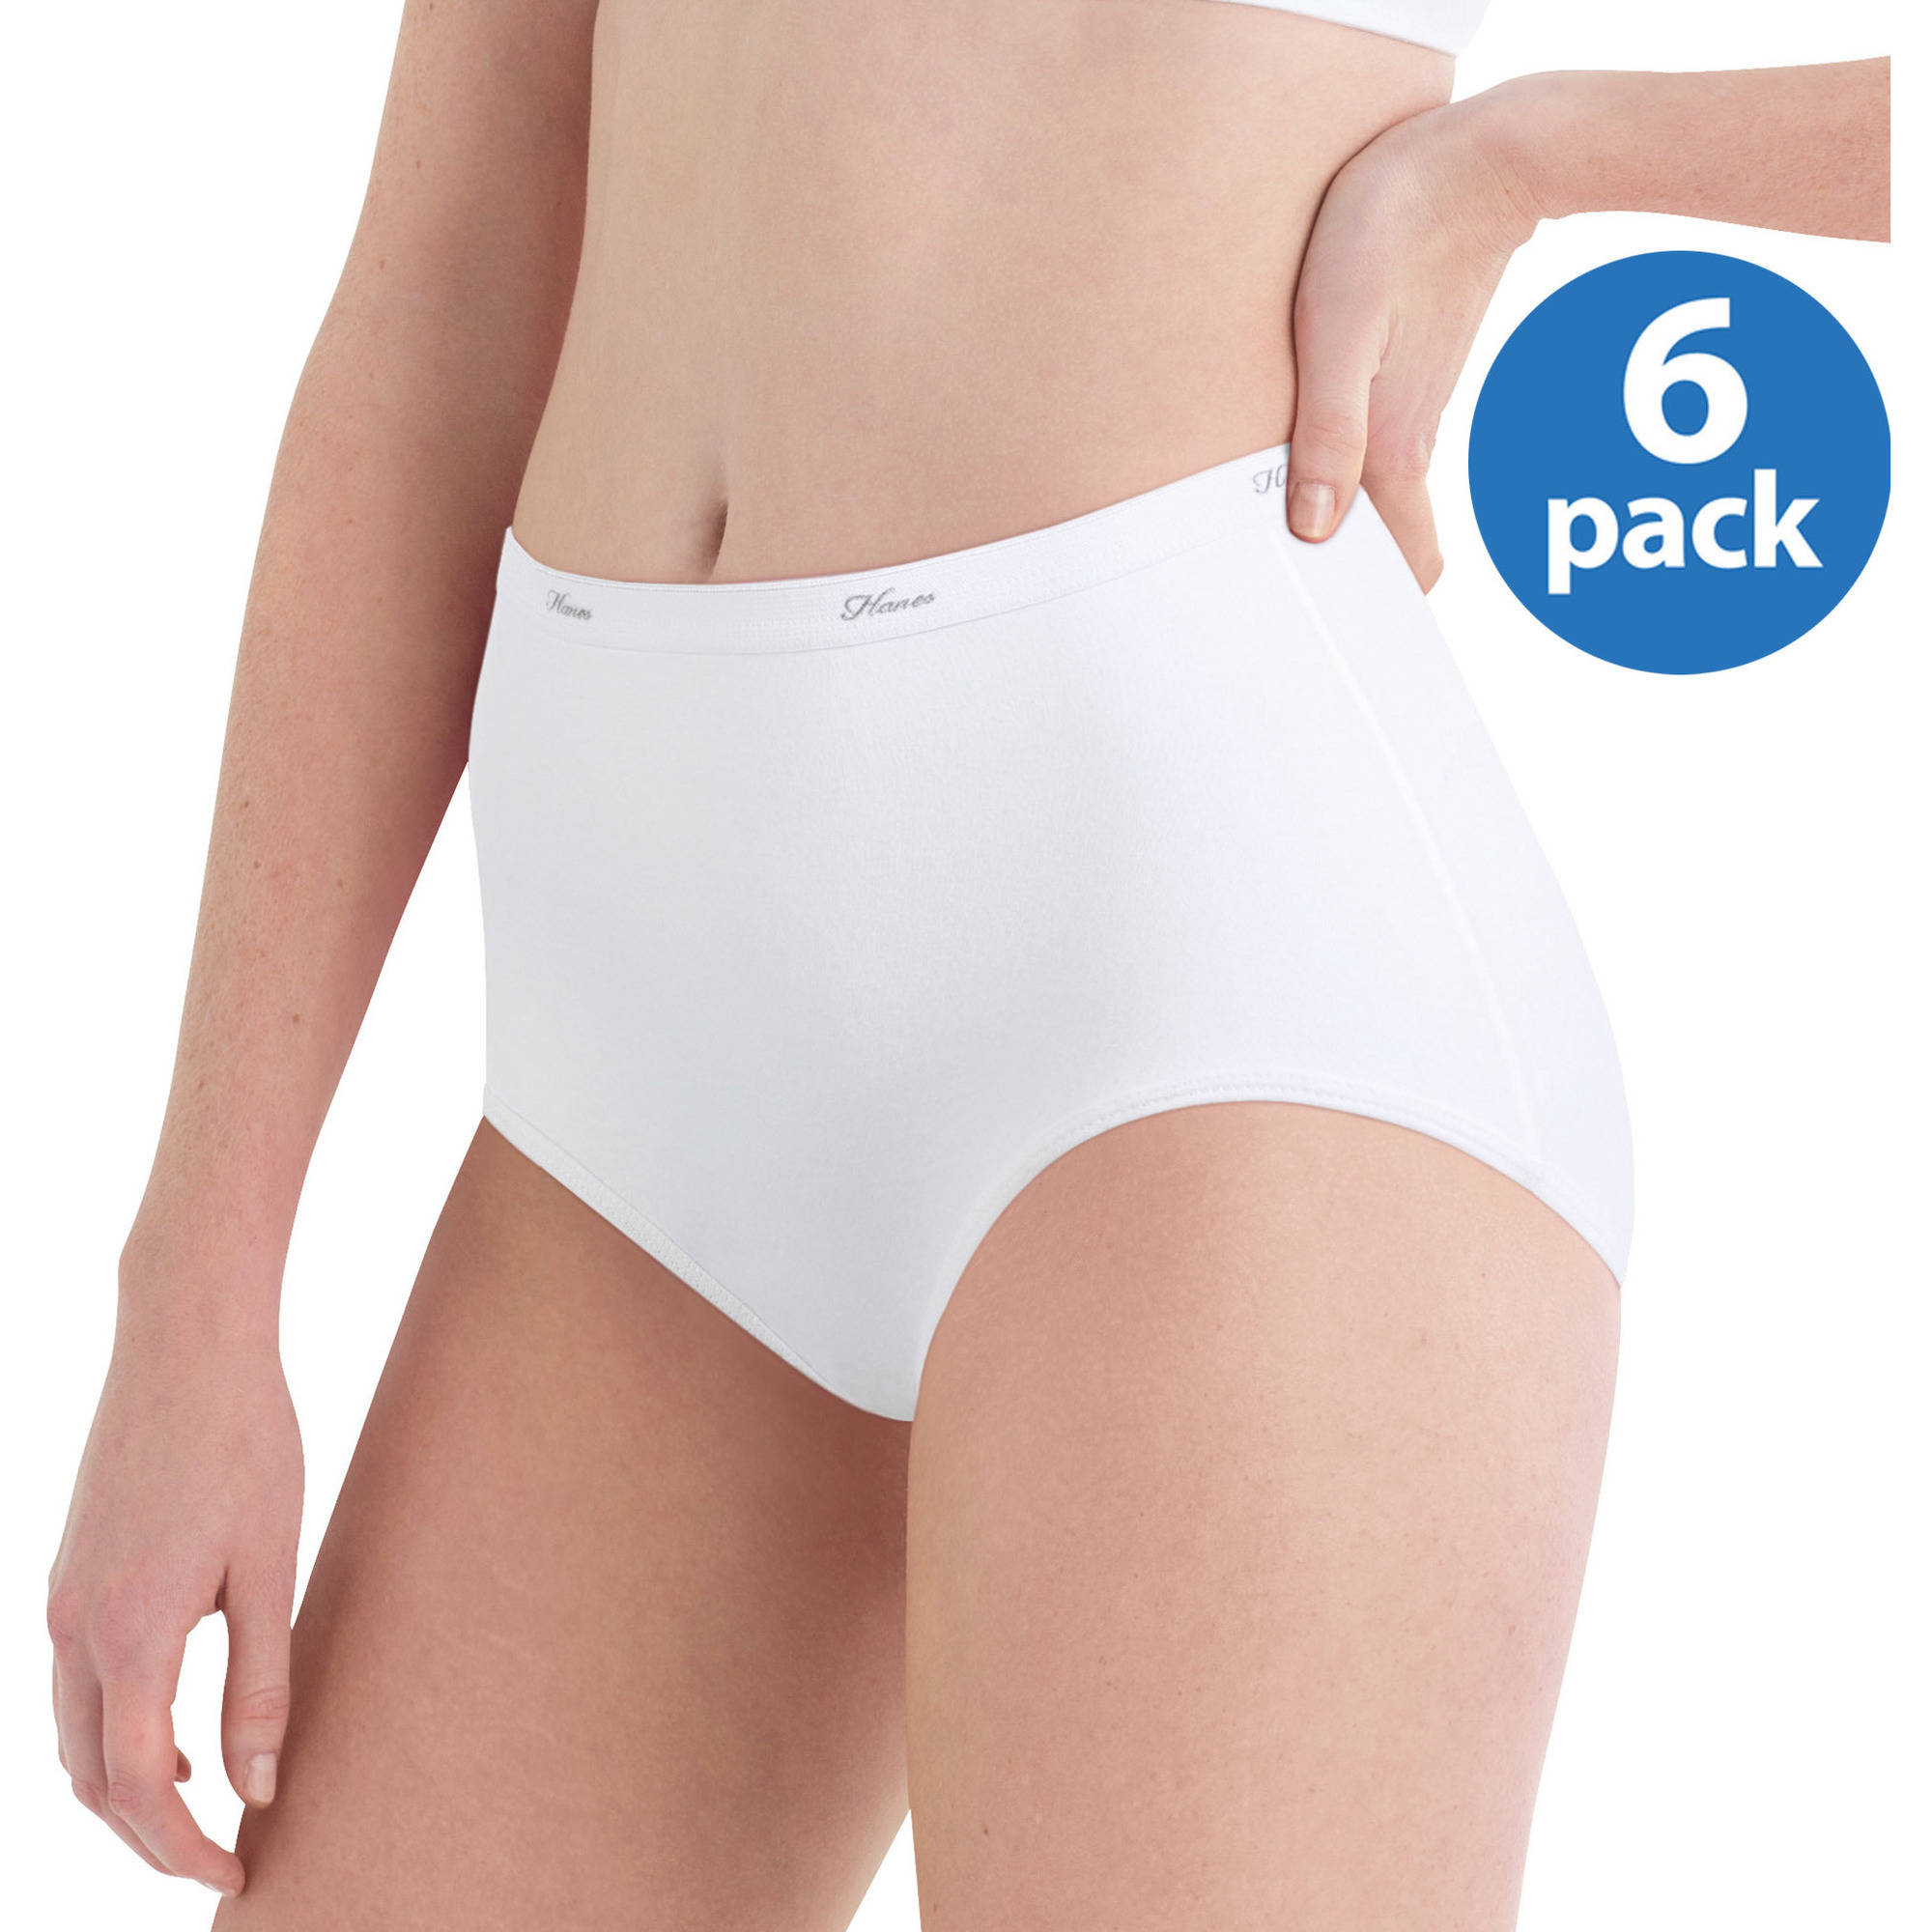 Hanes Women's Cotton No Ride Up White Briefs 6-Pack